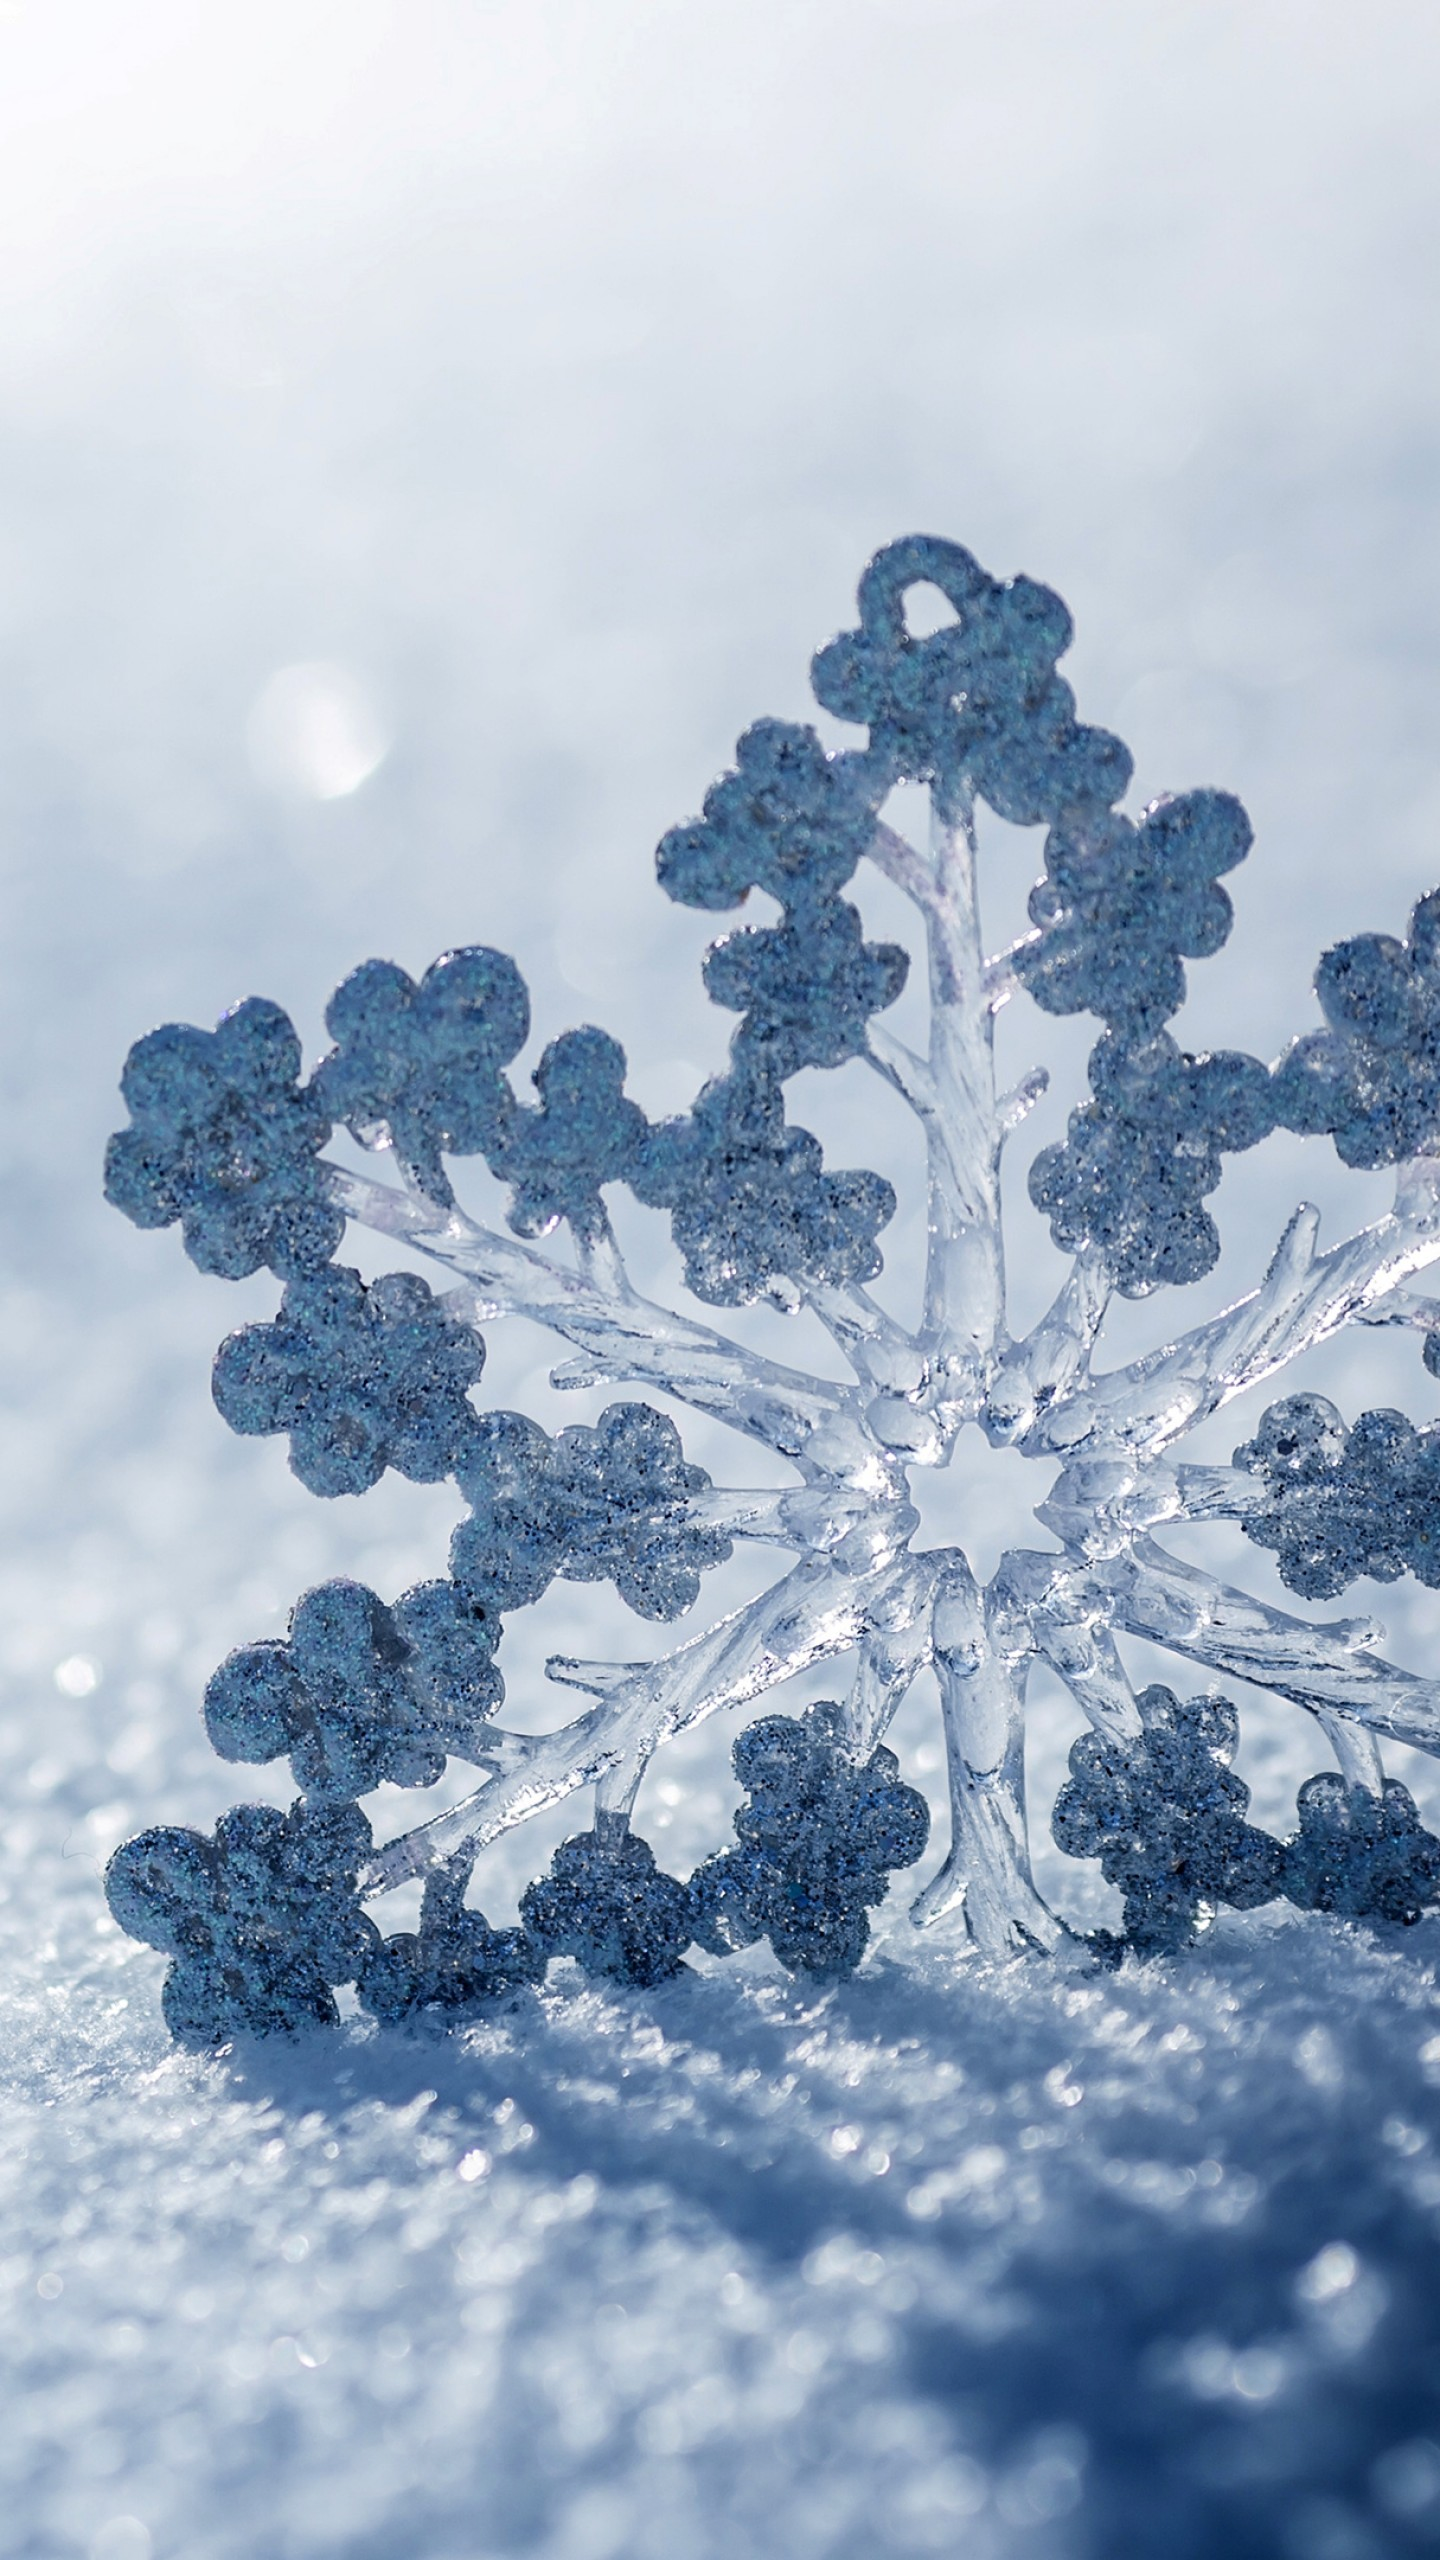 Stock Images Snow Winter Snowflake 4k Stock Images 17352